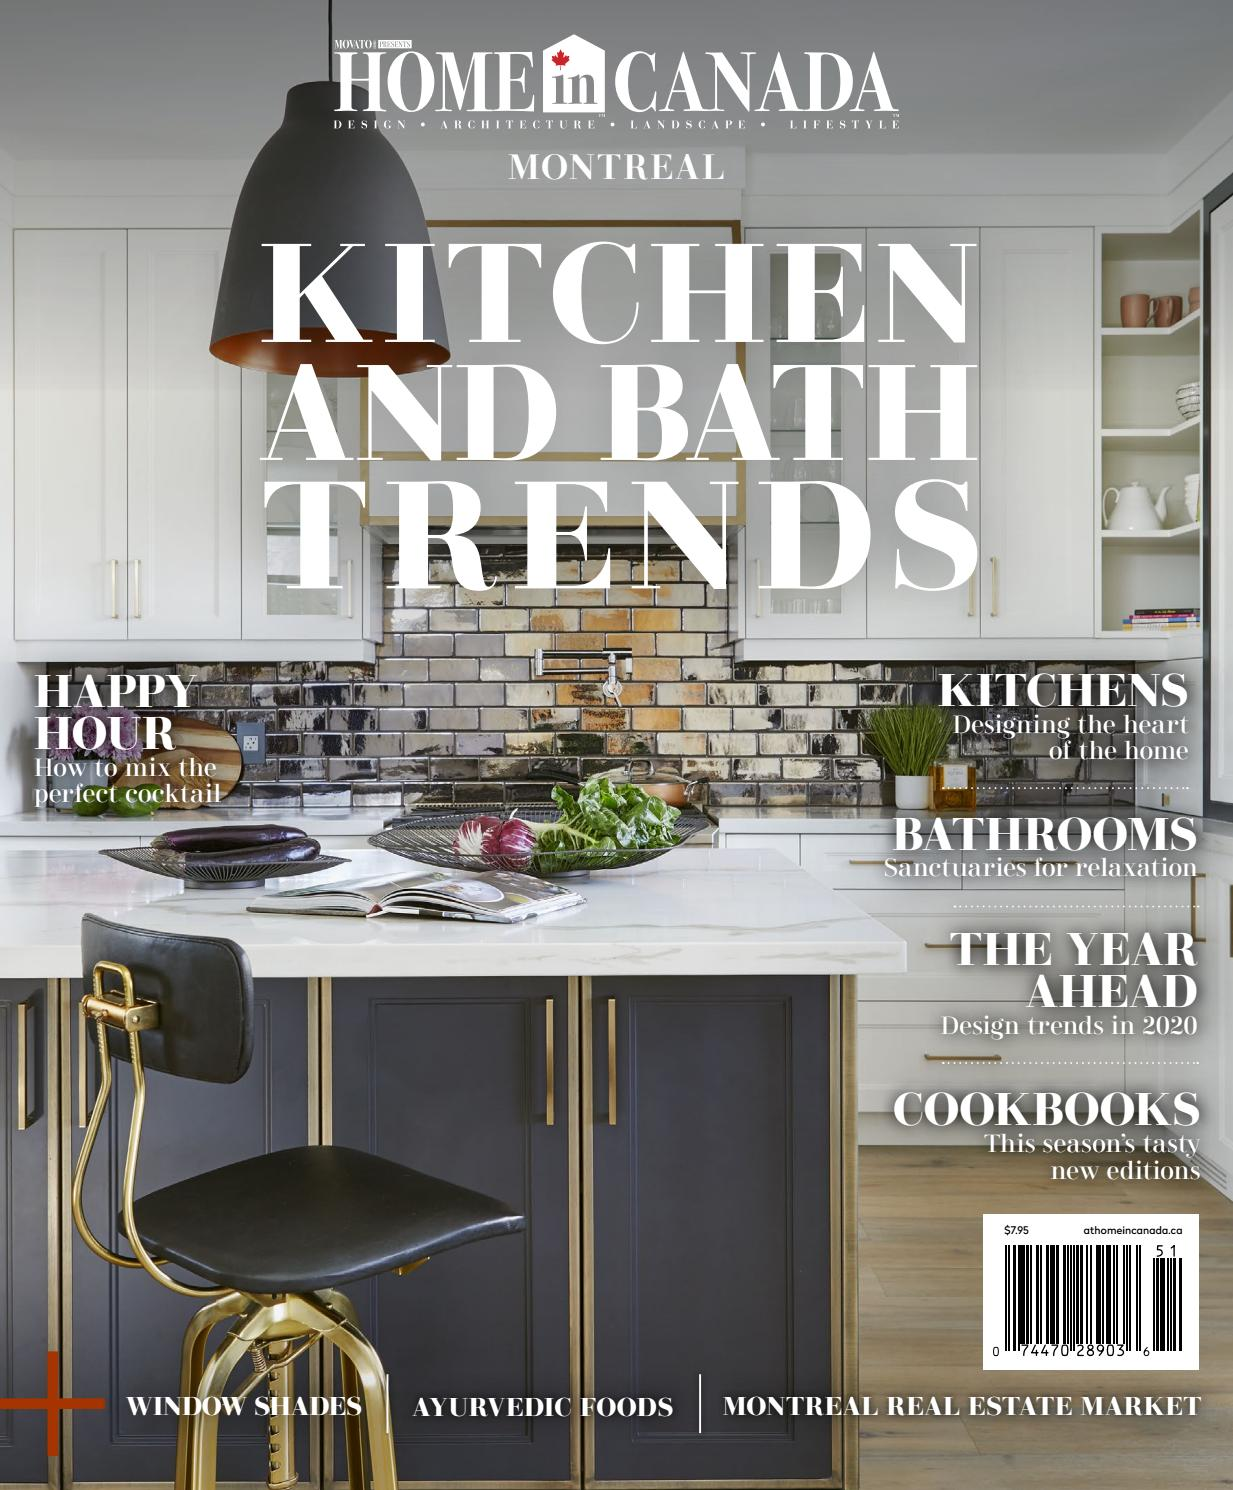 Home In Canada Montreal Kitchen And Bath Trends 2020 By Home In Canada Design Architecture Landscape Lifestyle Issuu